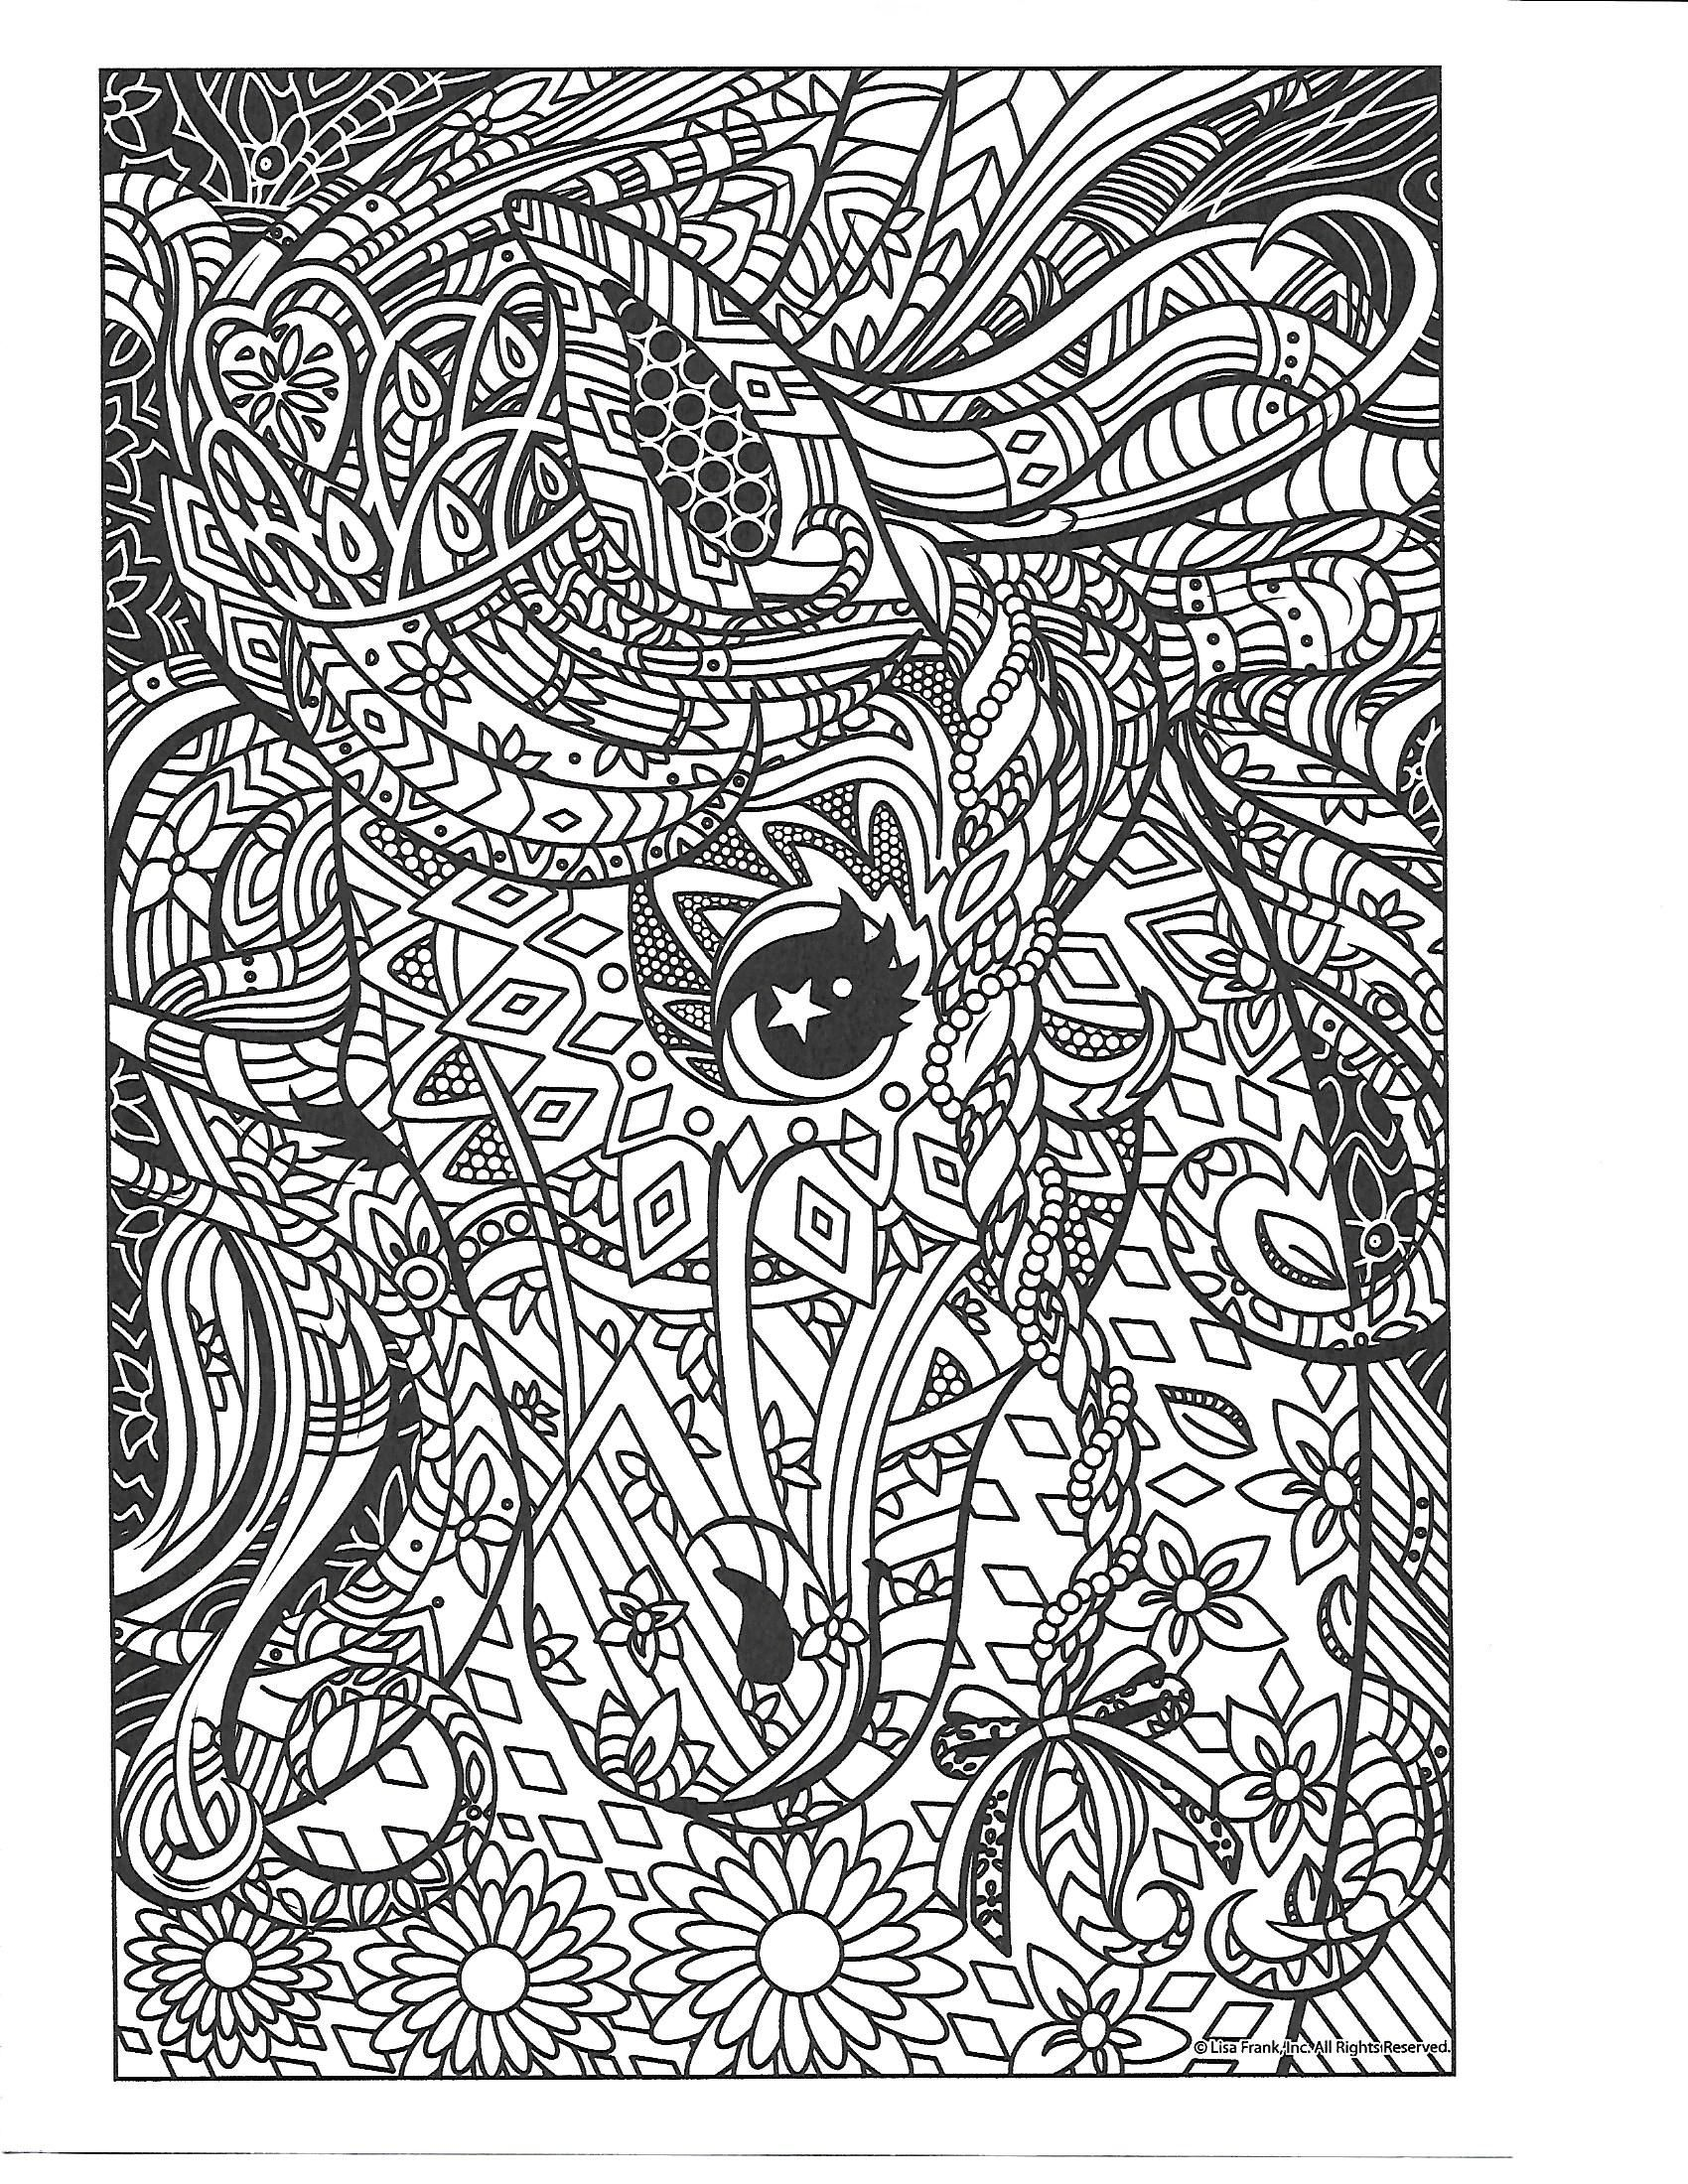 Pin By Steph H On Lisa Frank Coloring Pages Love Coloring Pages Lisa Frank Coloring Books Coloring Pages [ 2200 x 1700 Pixel ]